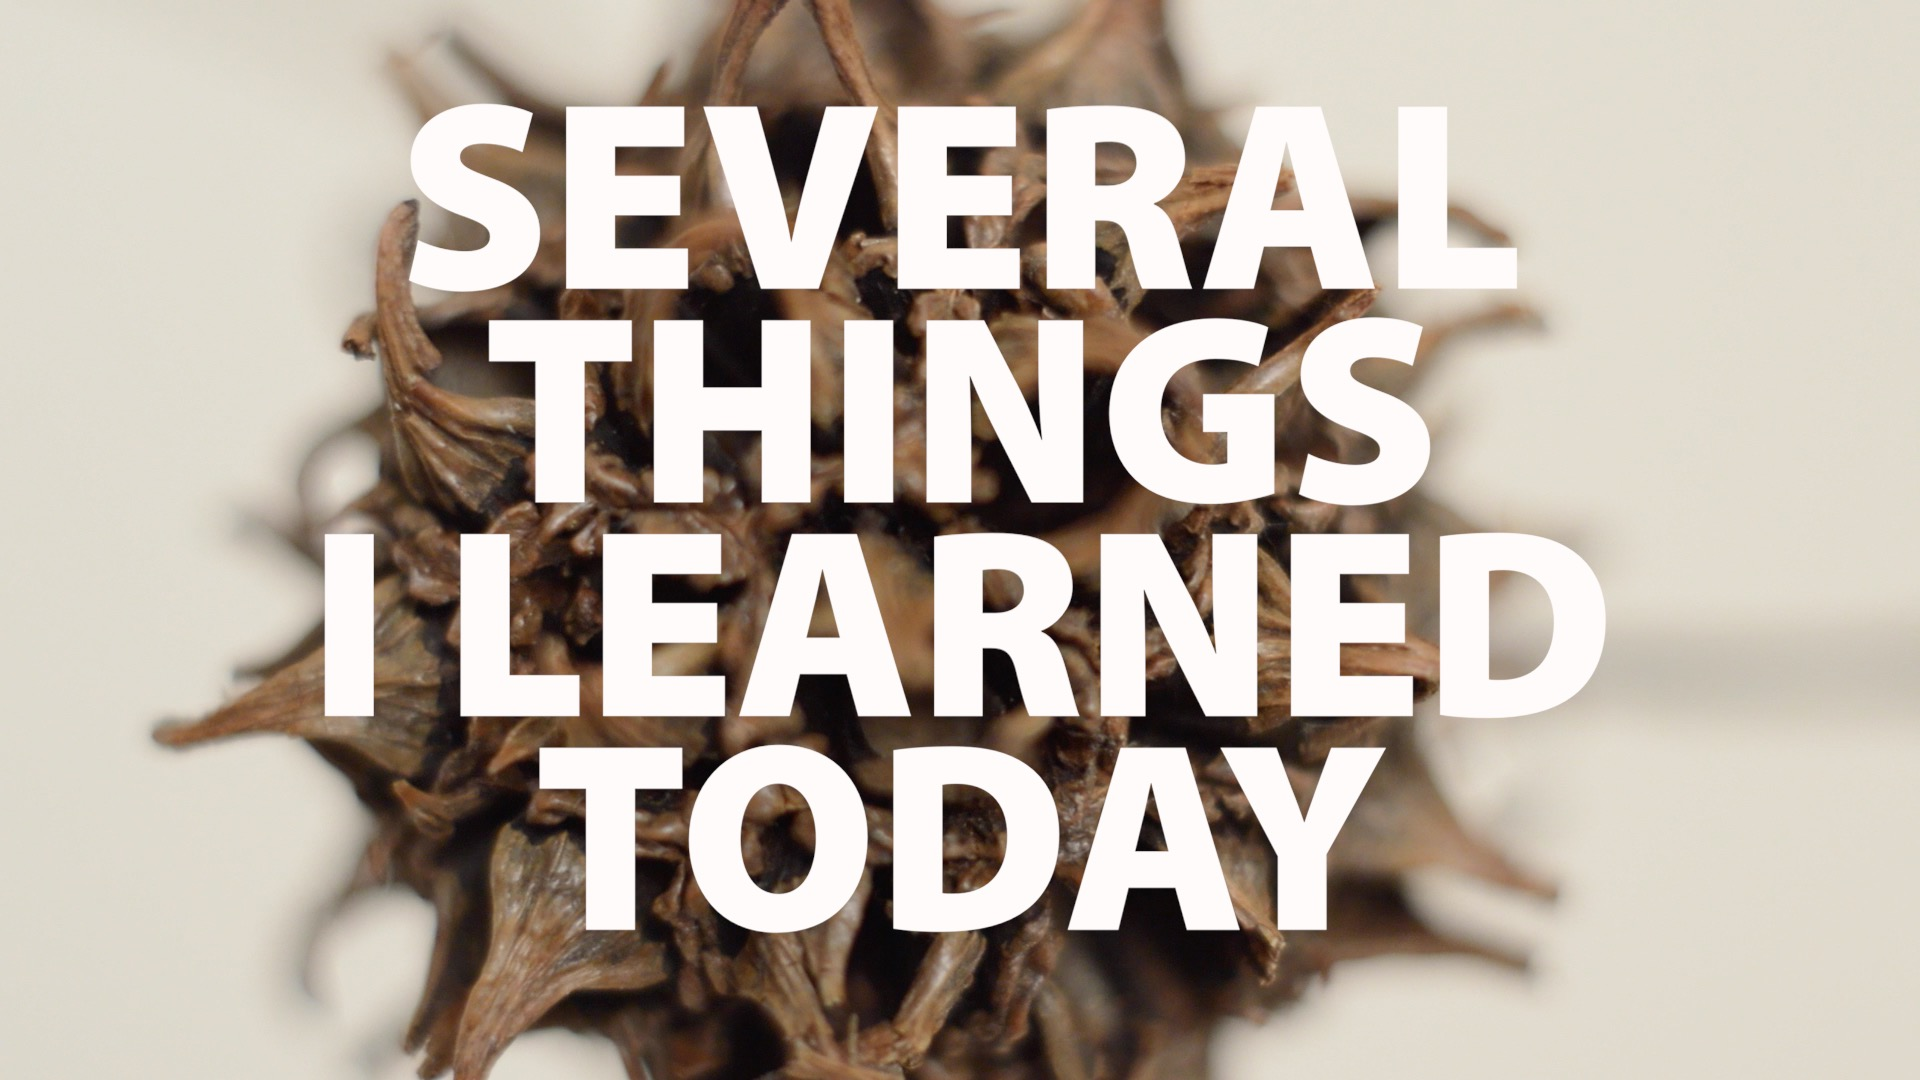 Several Things I Learned Today